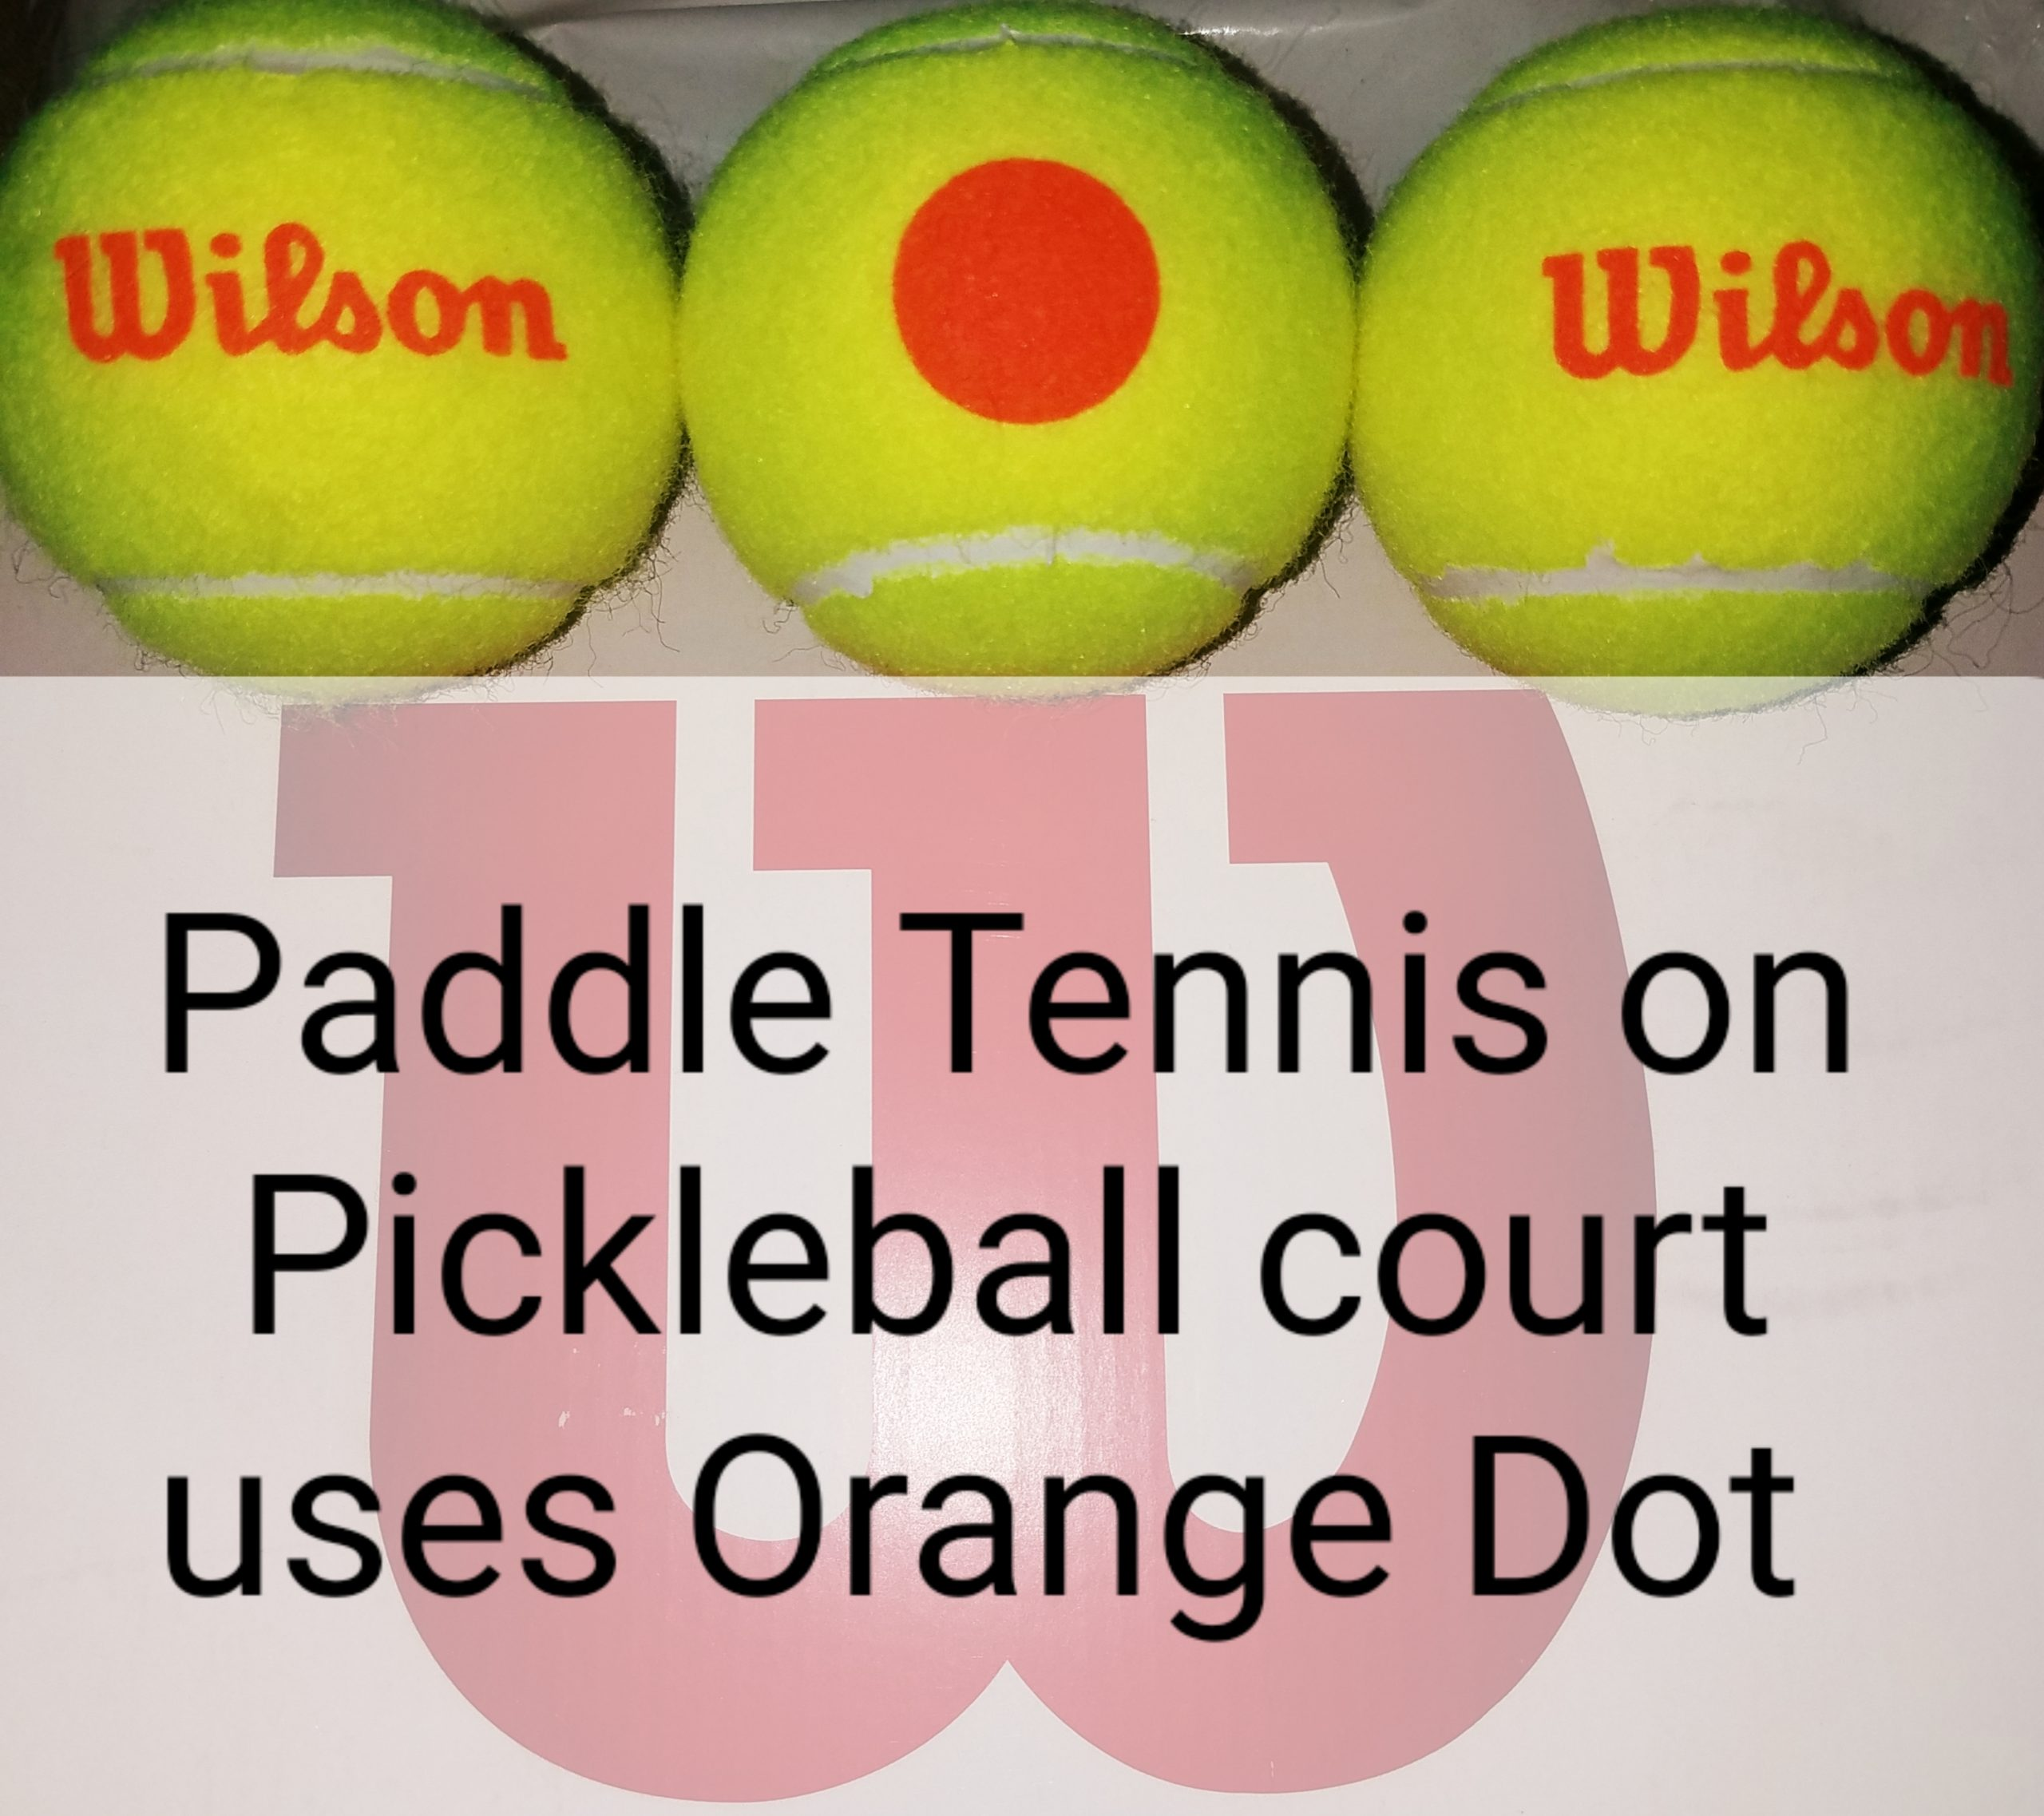 Paddle Tennis on a Pickleball court is still Paddle Tennis, and Spec Tennis.